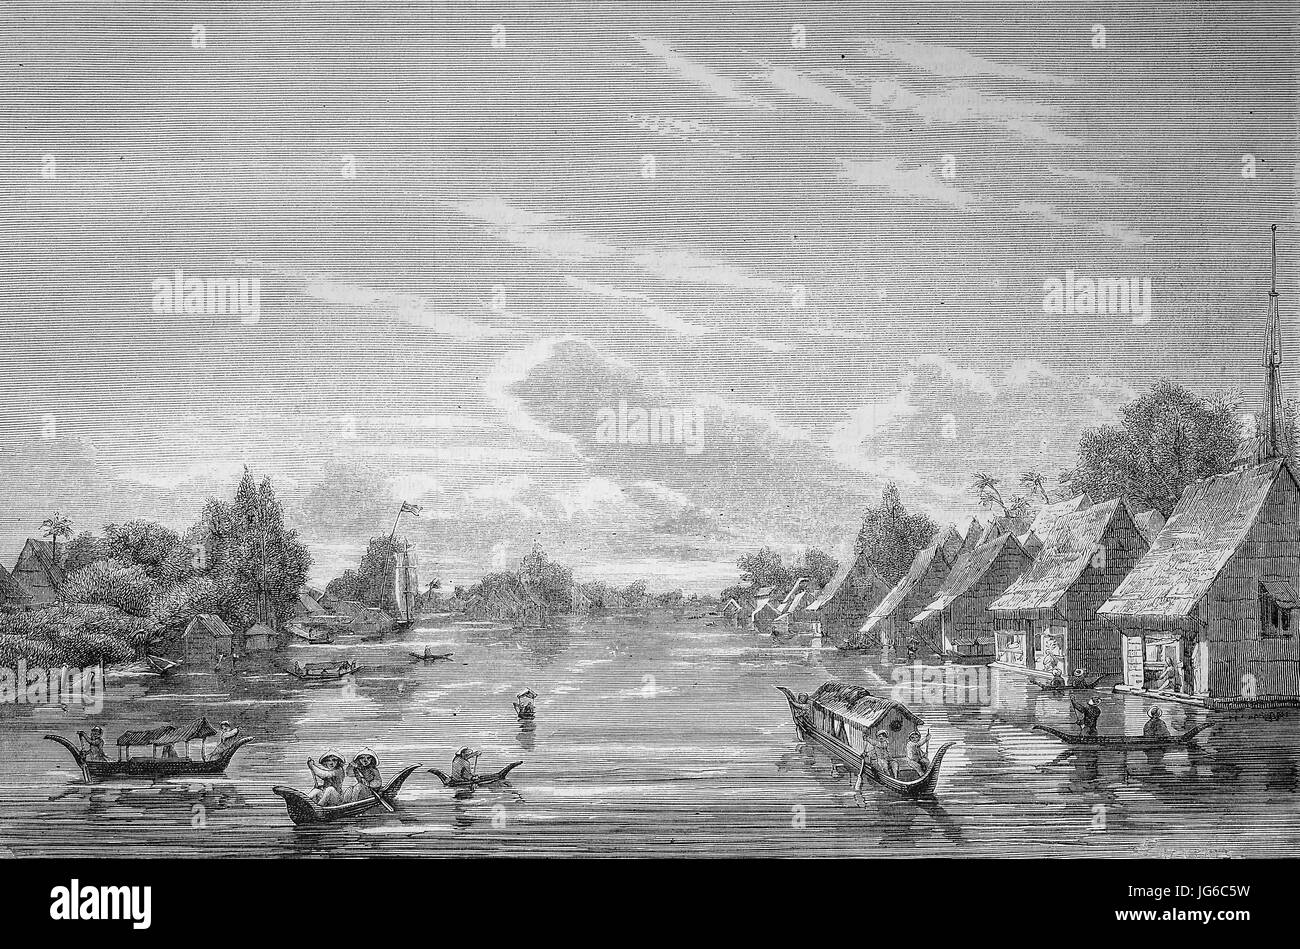 Digital improved:, the swimmung city of Banjer-Masing, Banjarmasin at Borneo, Indonesia, illustration from the 19th Stock Photo